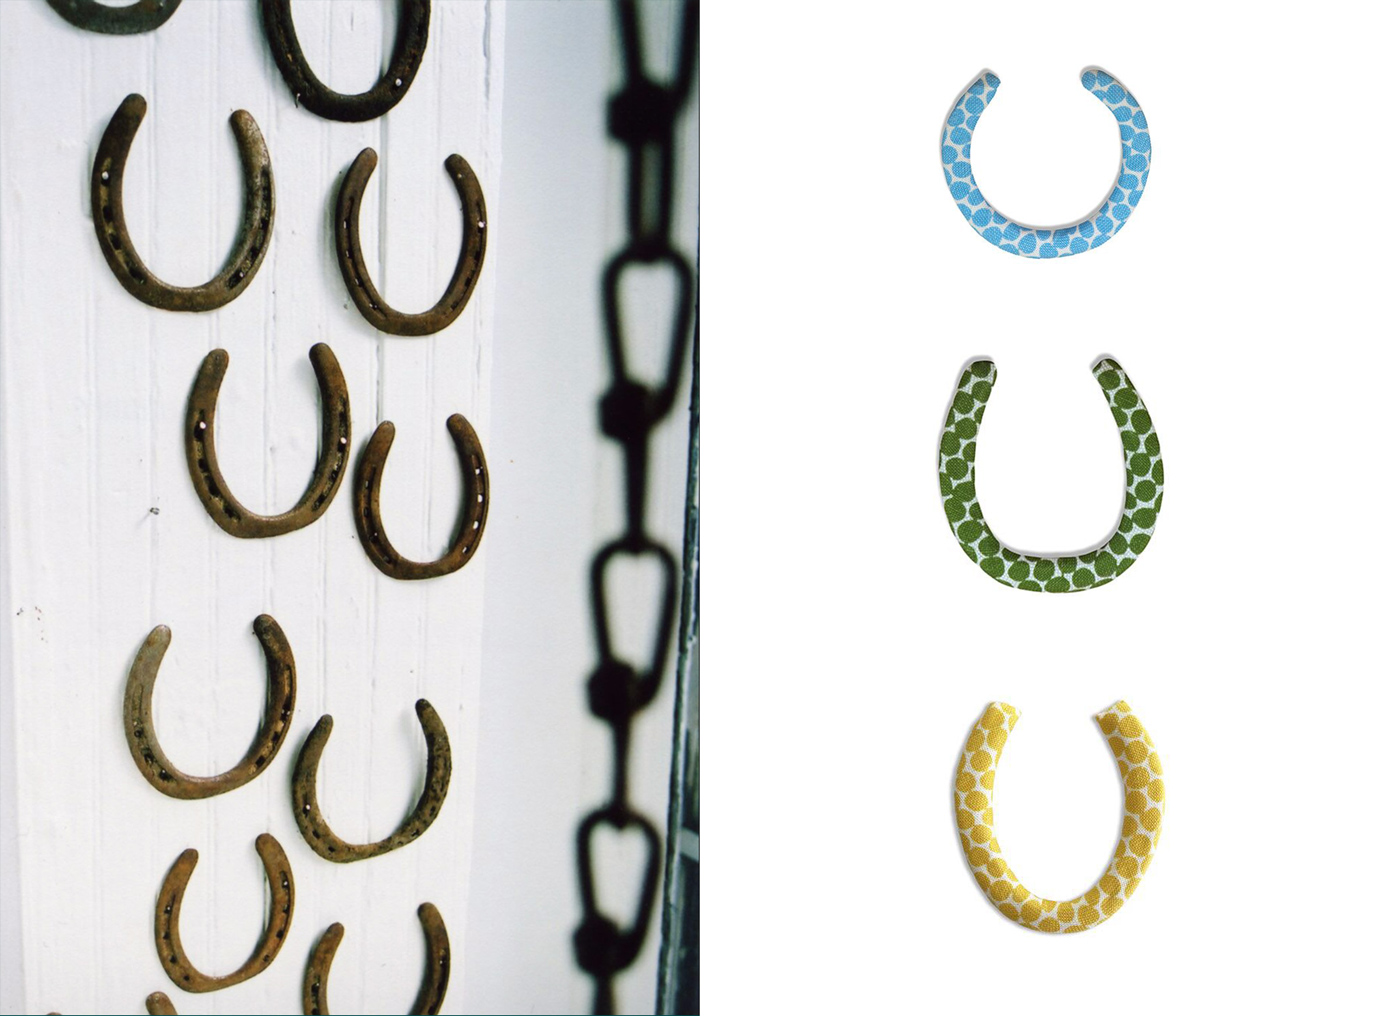 Left: A sampling of the authentic, recycled horseshoes that we use for our  horseshoe collection . Right: A variety of our horseshoes that are available in our handprinted fabrics. Including the  Blue Beads Horseshoe ,  Green Beads Horseshoe  and  Lemon Beads Horseshoe .